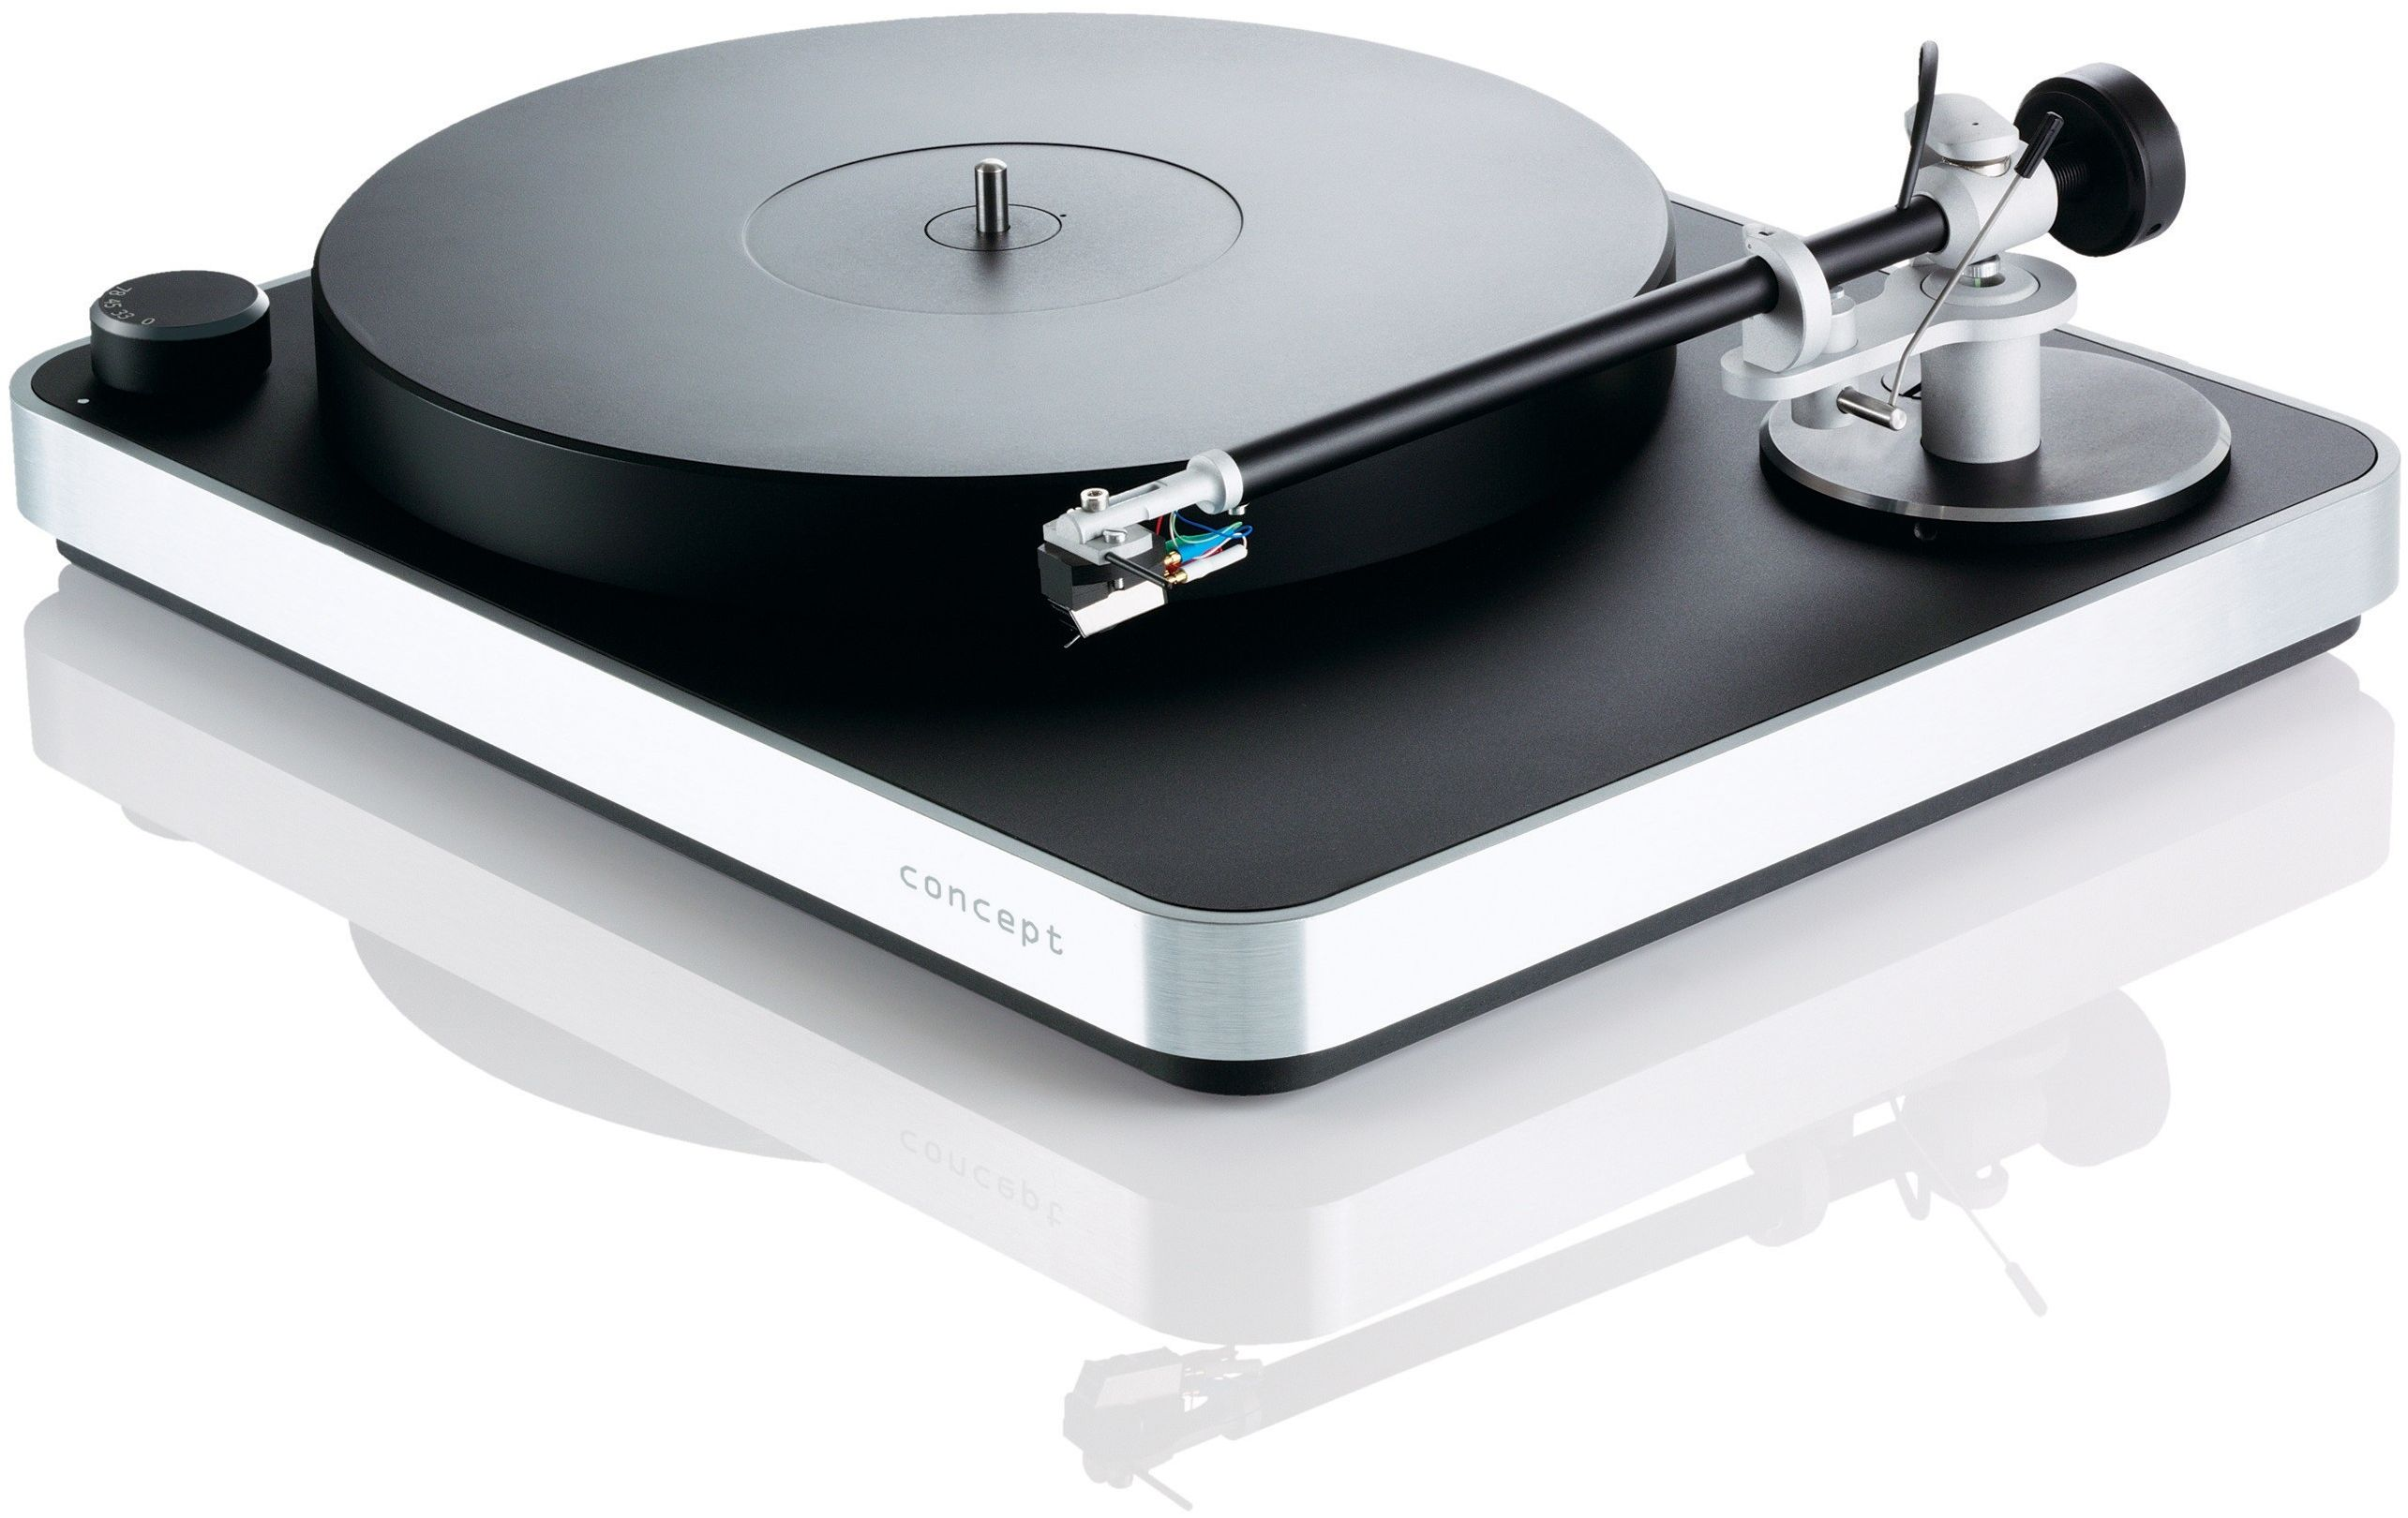 This Record Player Is The Recipient Of Several Awards And Itu0027s Undoubtedly  The Best Turntable Within Its Class. If You Are In The Market For A  Versatile, ...